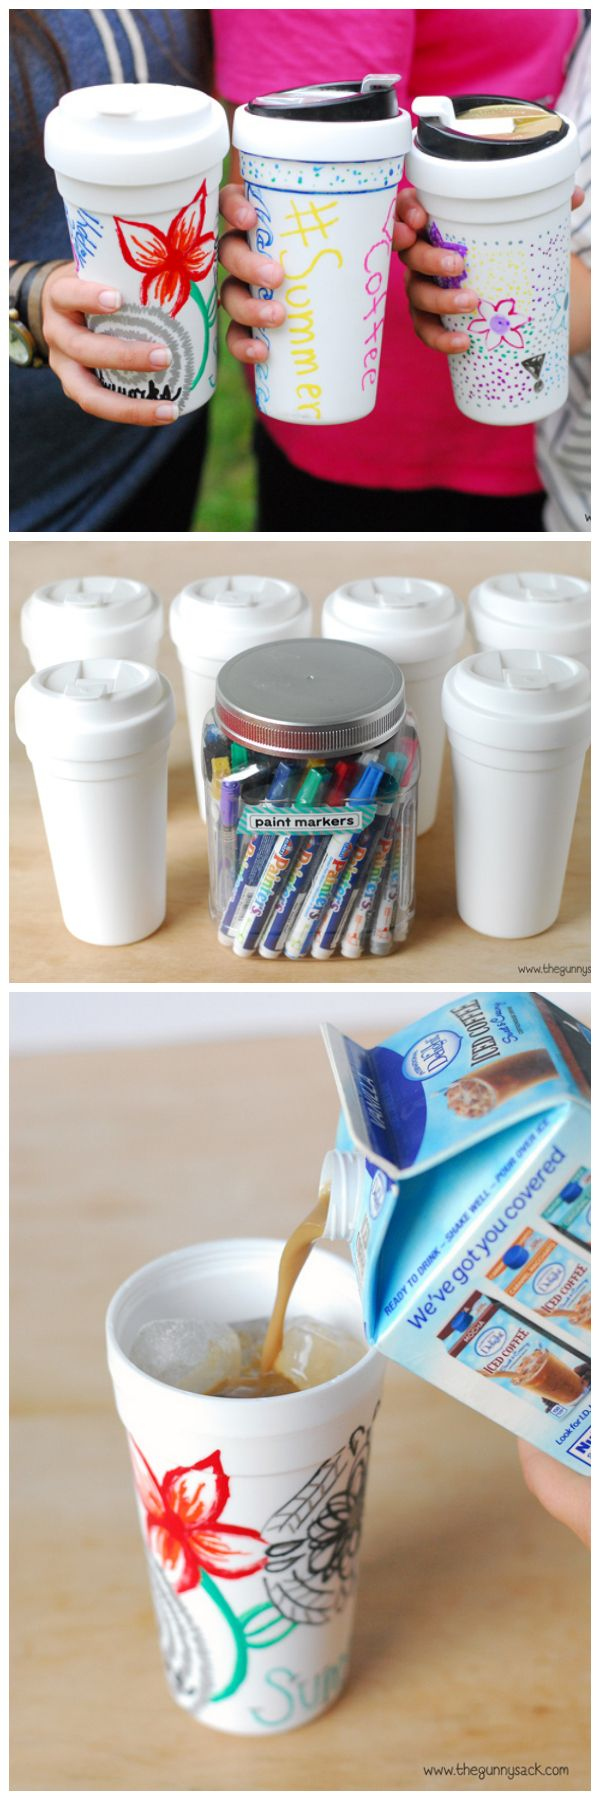 DIY Iced Coffee Carafes are a fun summer activity! #coffee #client #IcedDelight